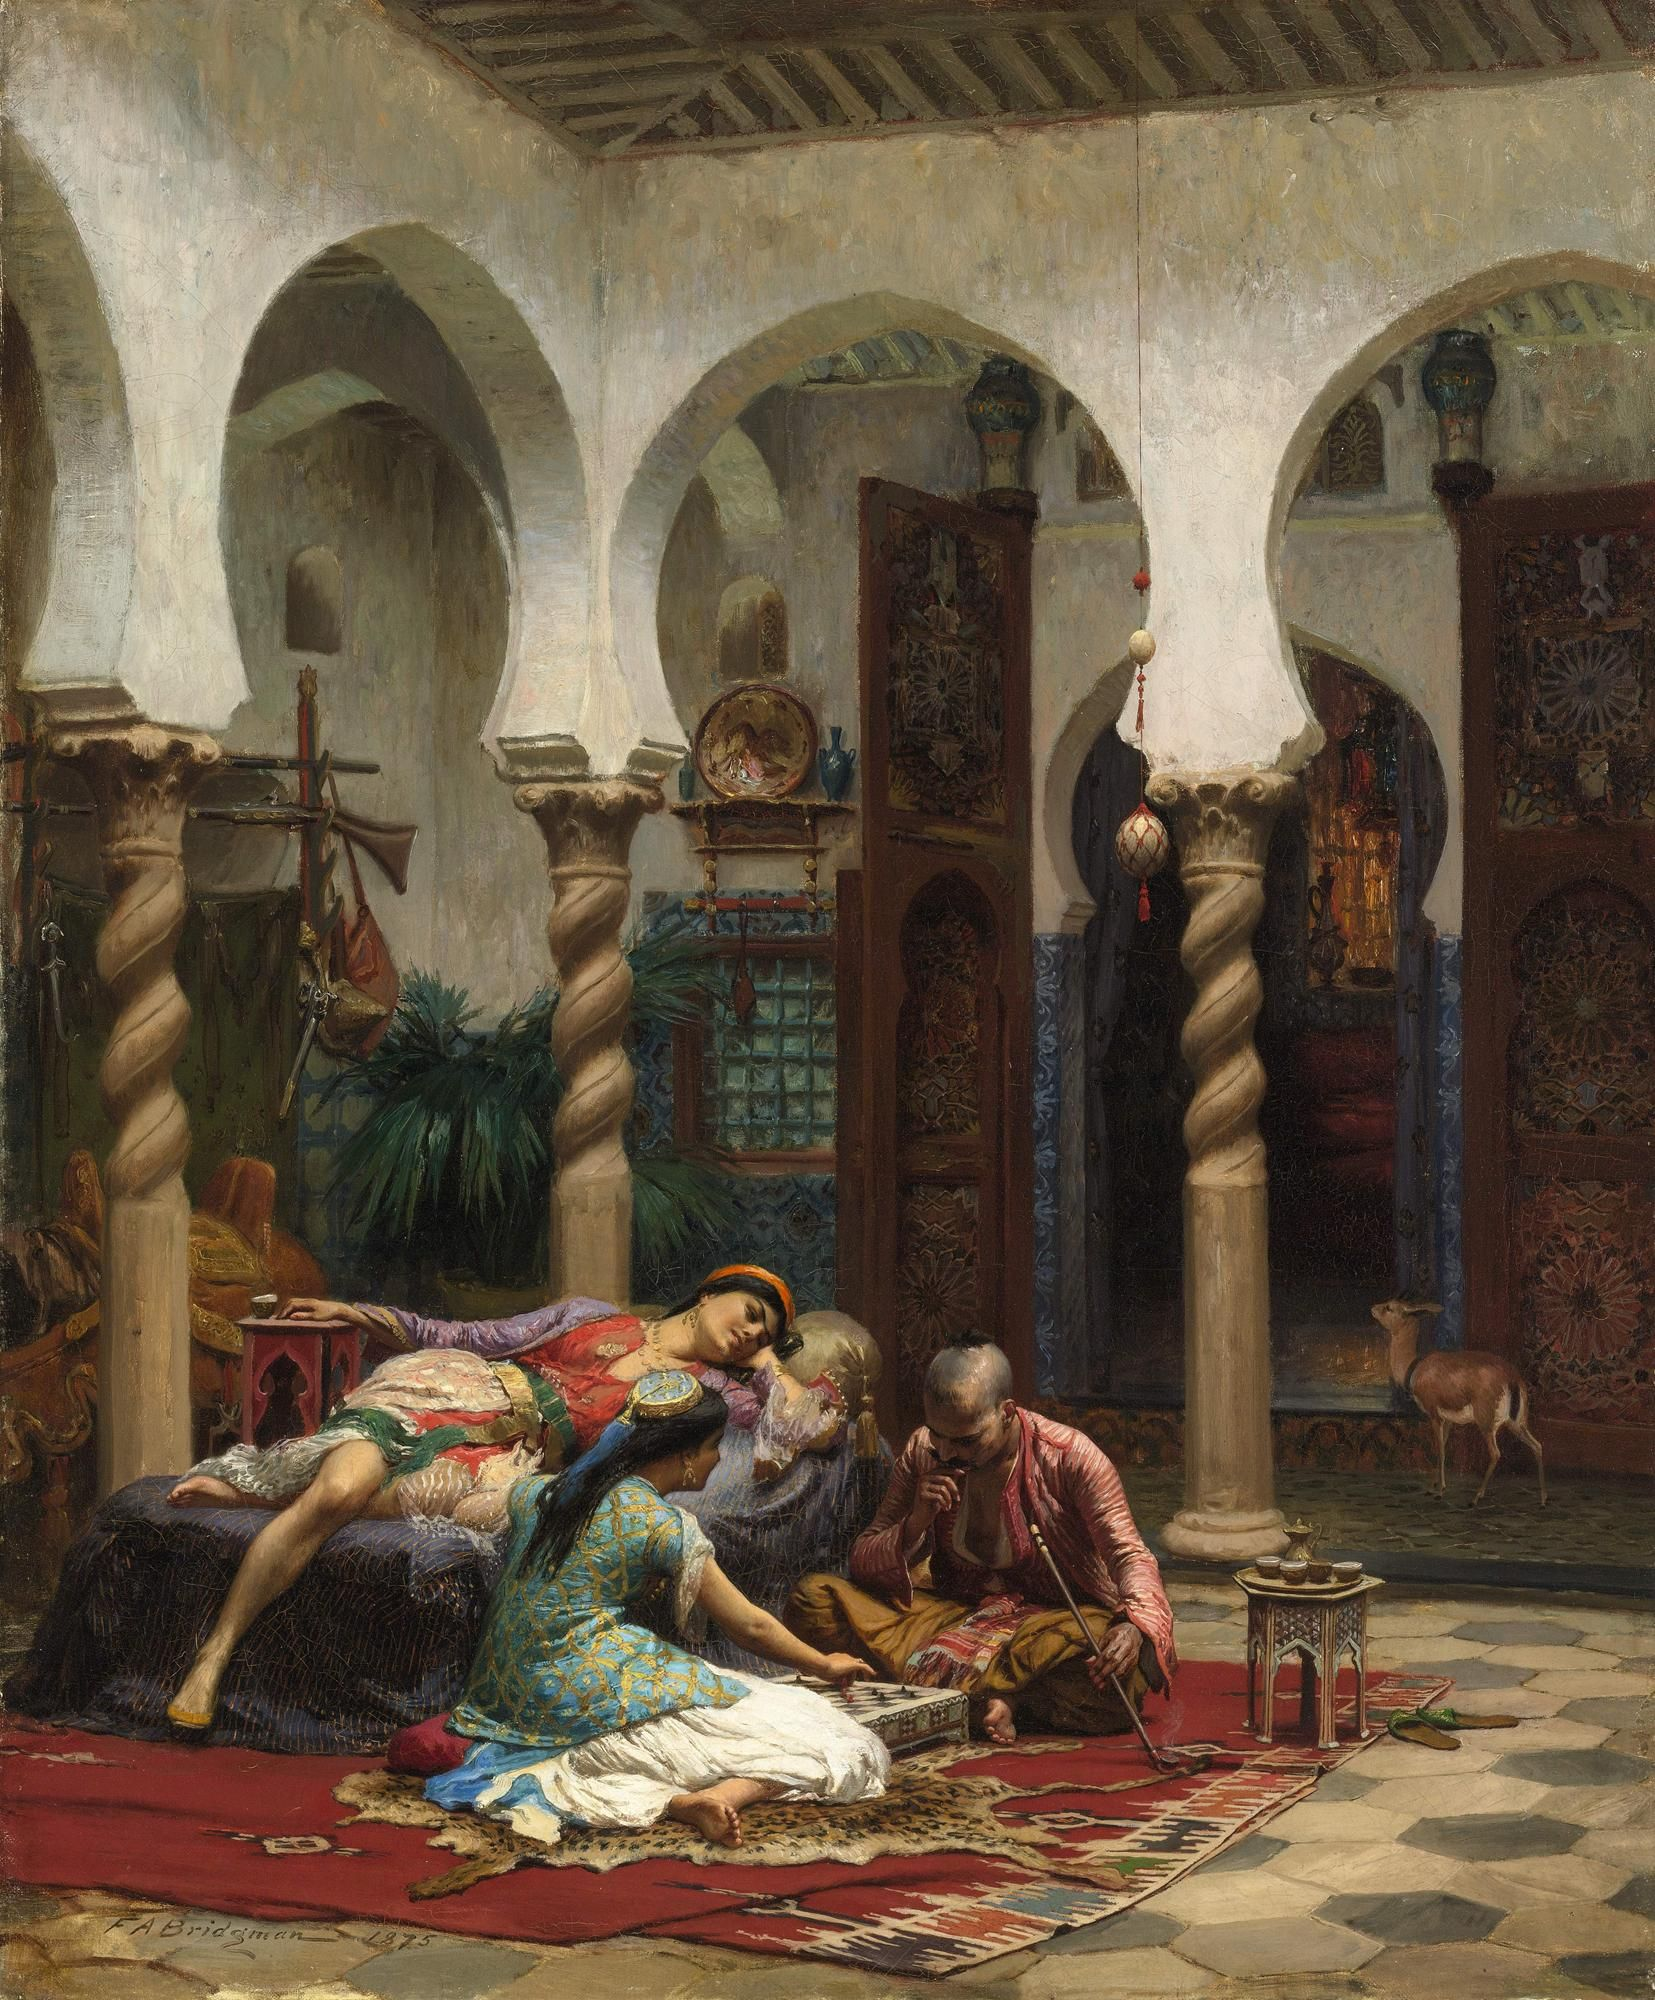 585e2587c7a frederick arthur bridgman paintings - Google Search